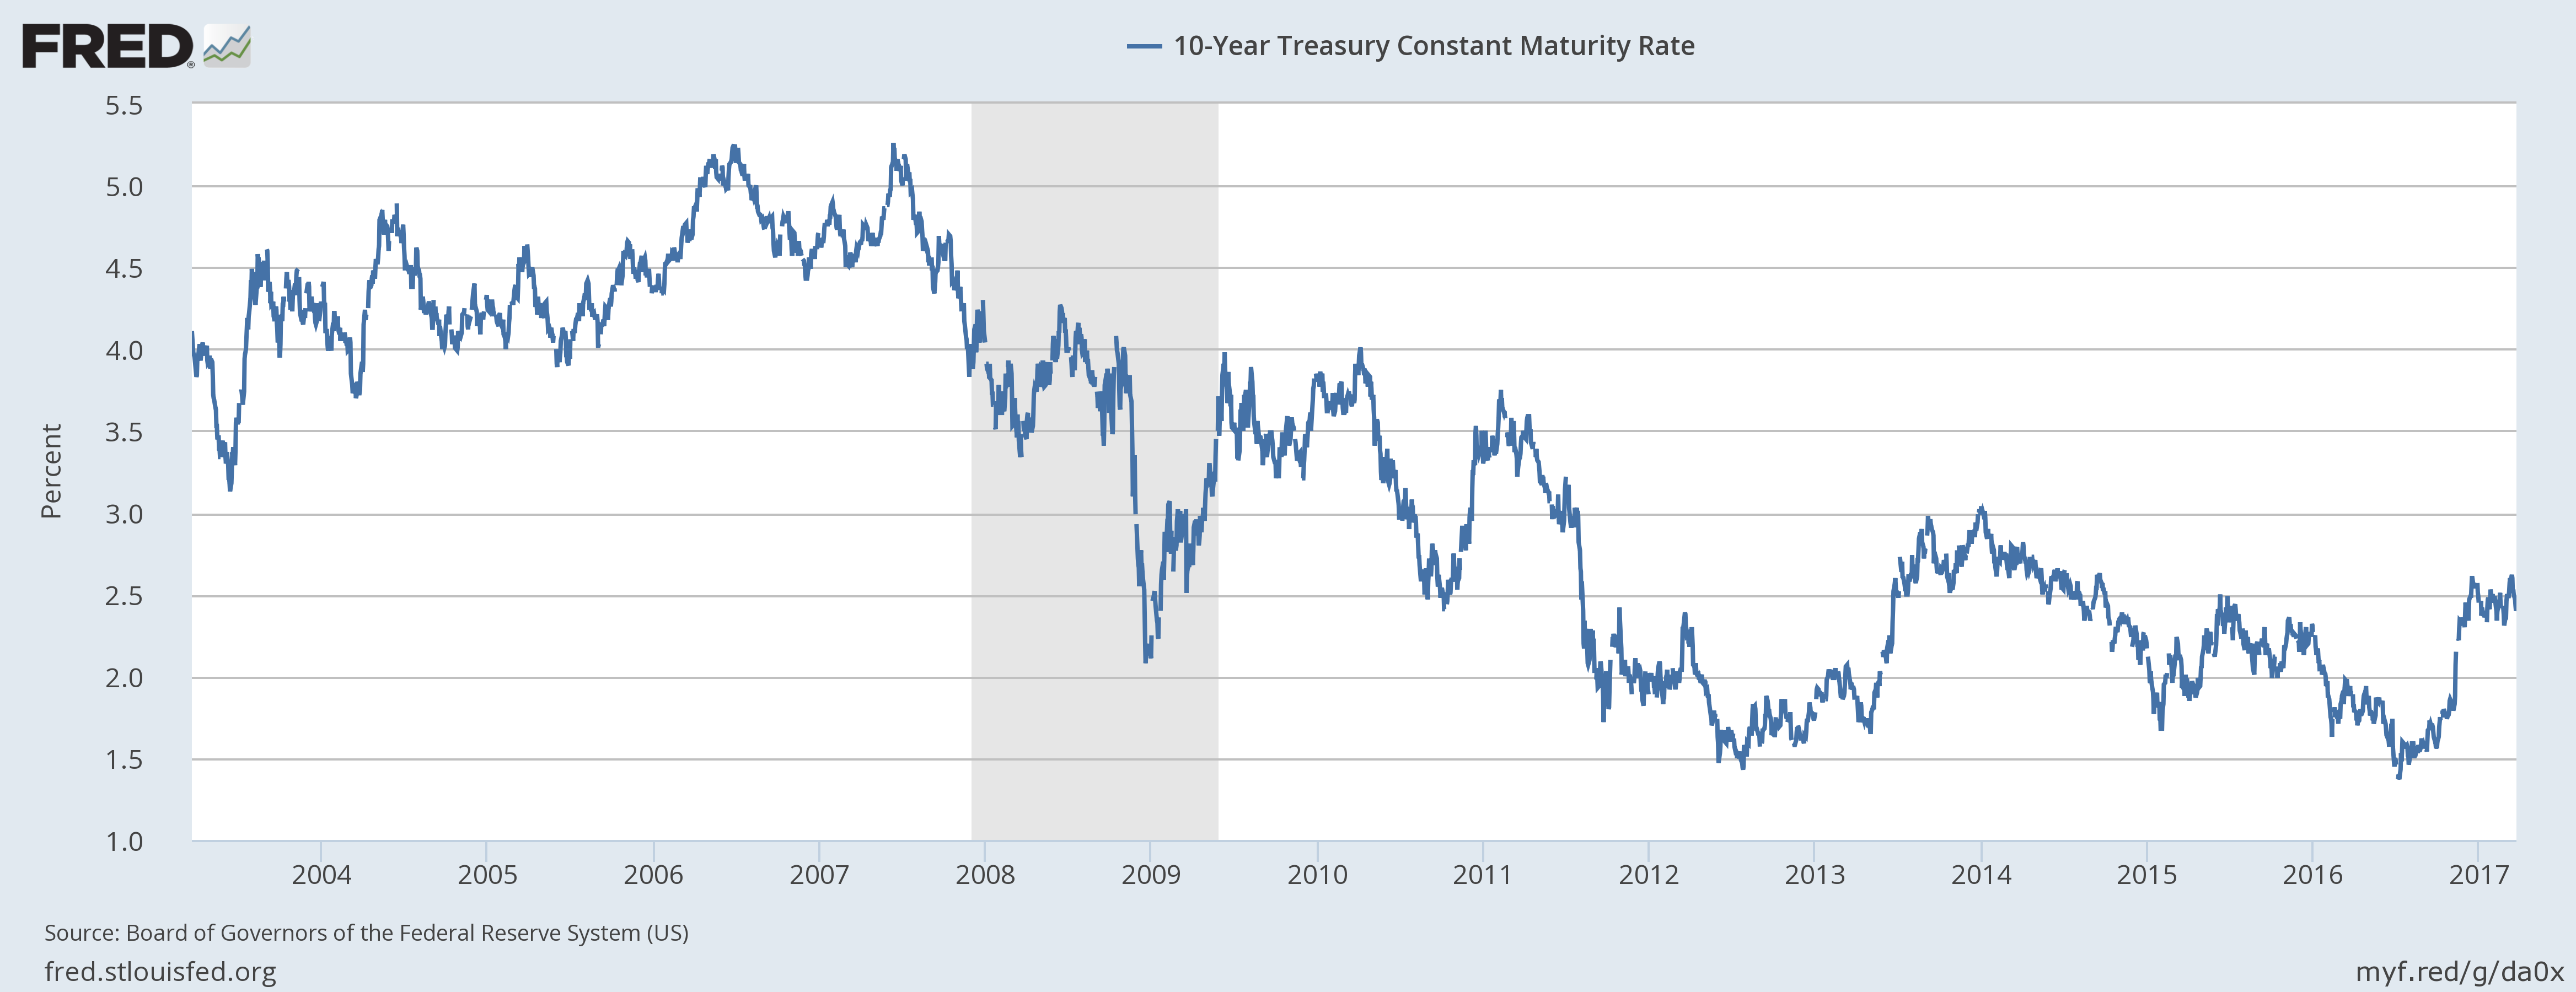 10 Year Treasury Constant Maturity Rate, 2003 - 2017